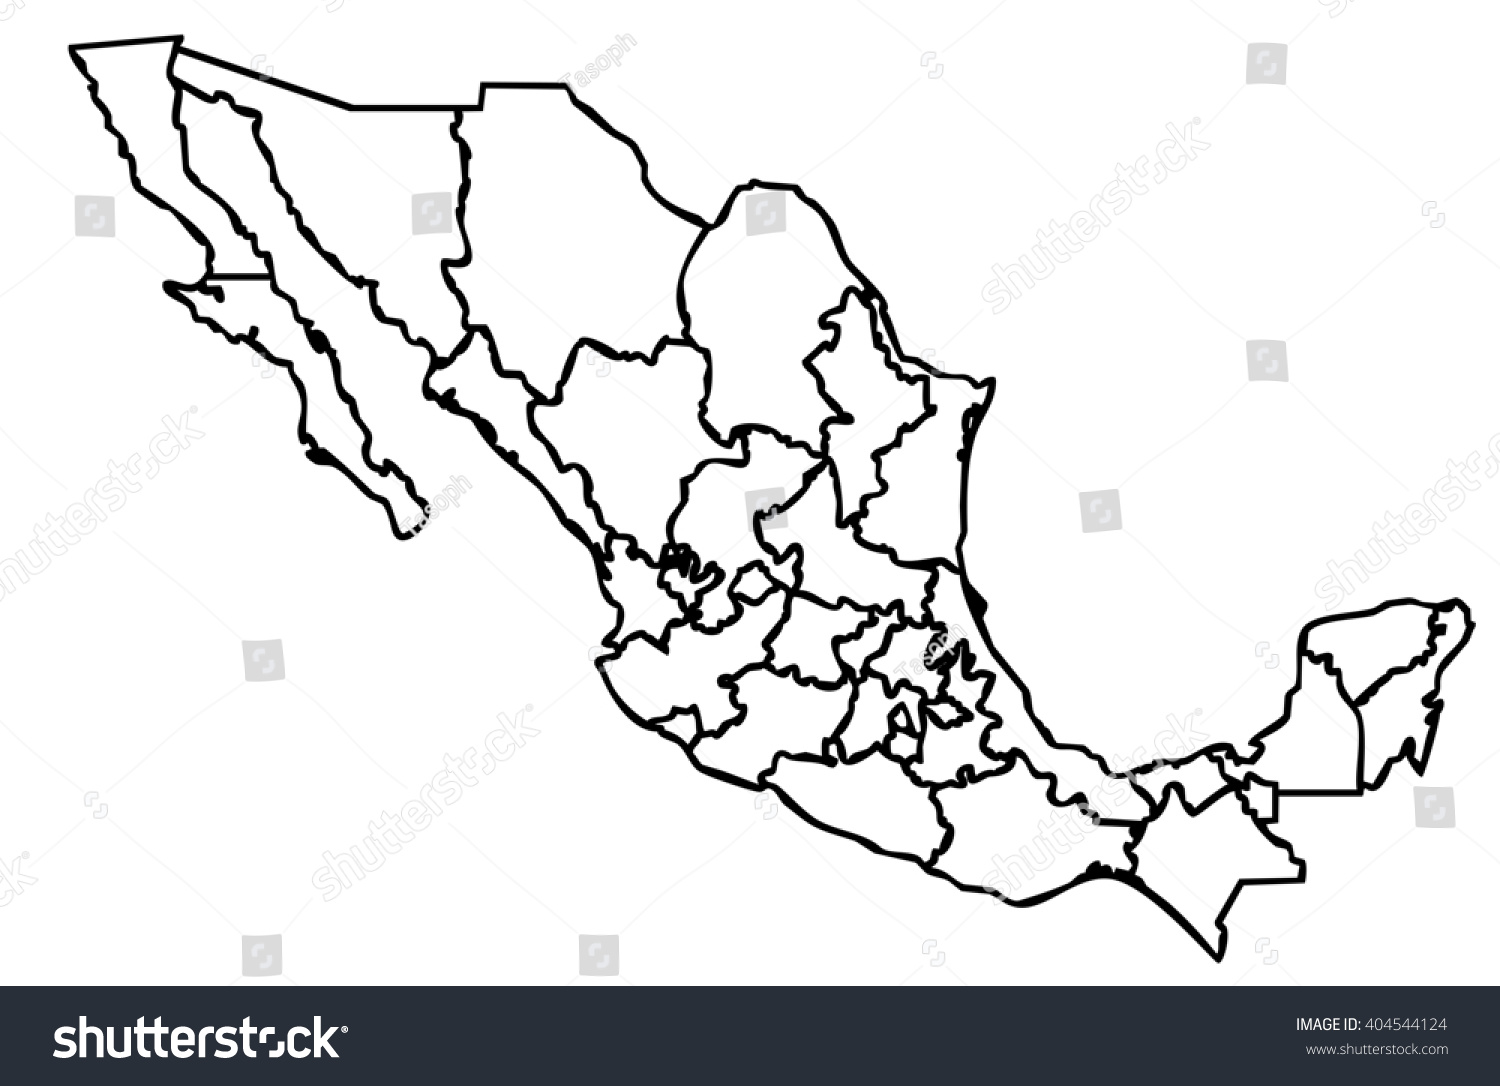 Isolated Political Mexican Map Mexico State Stock ...